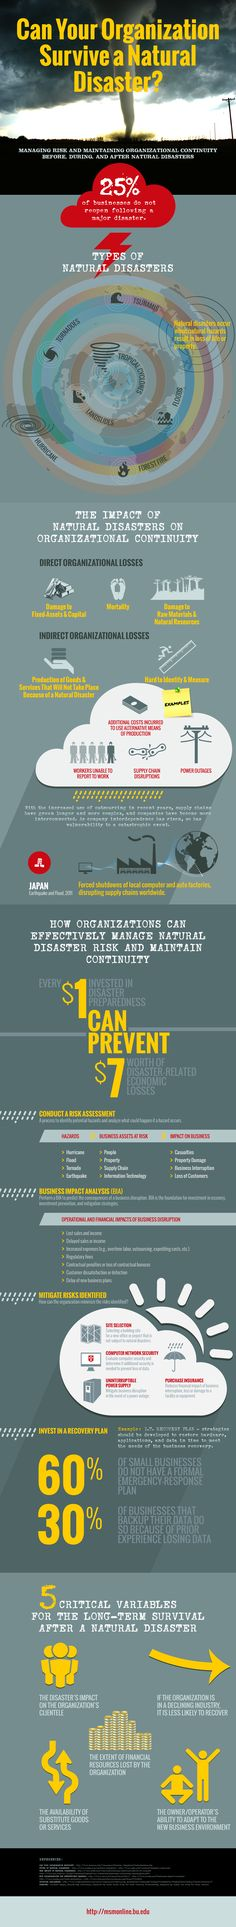 Can Your Organization Survive A Natural Disaster  #Infographic #Business #Disaster